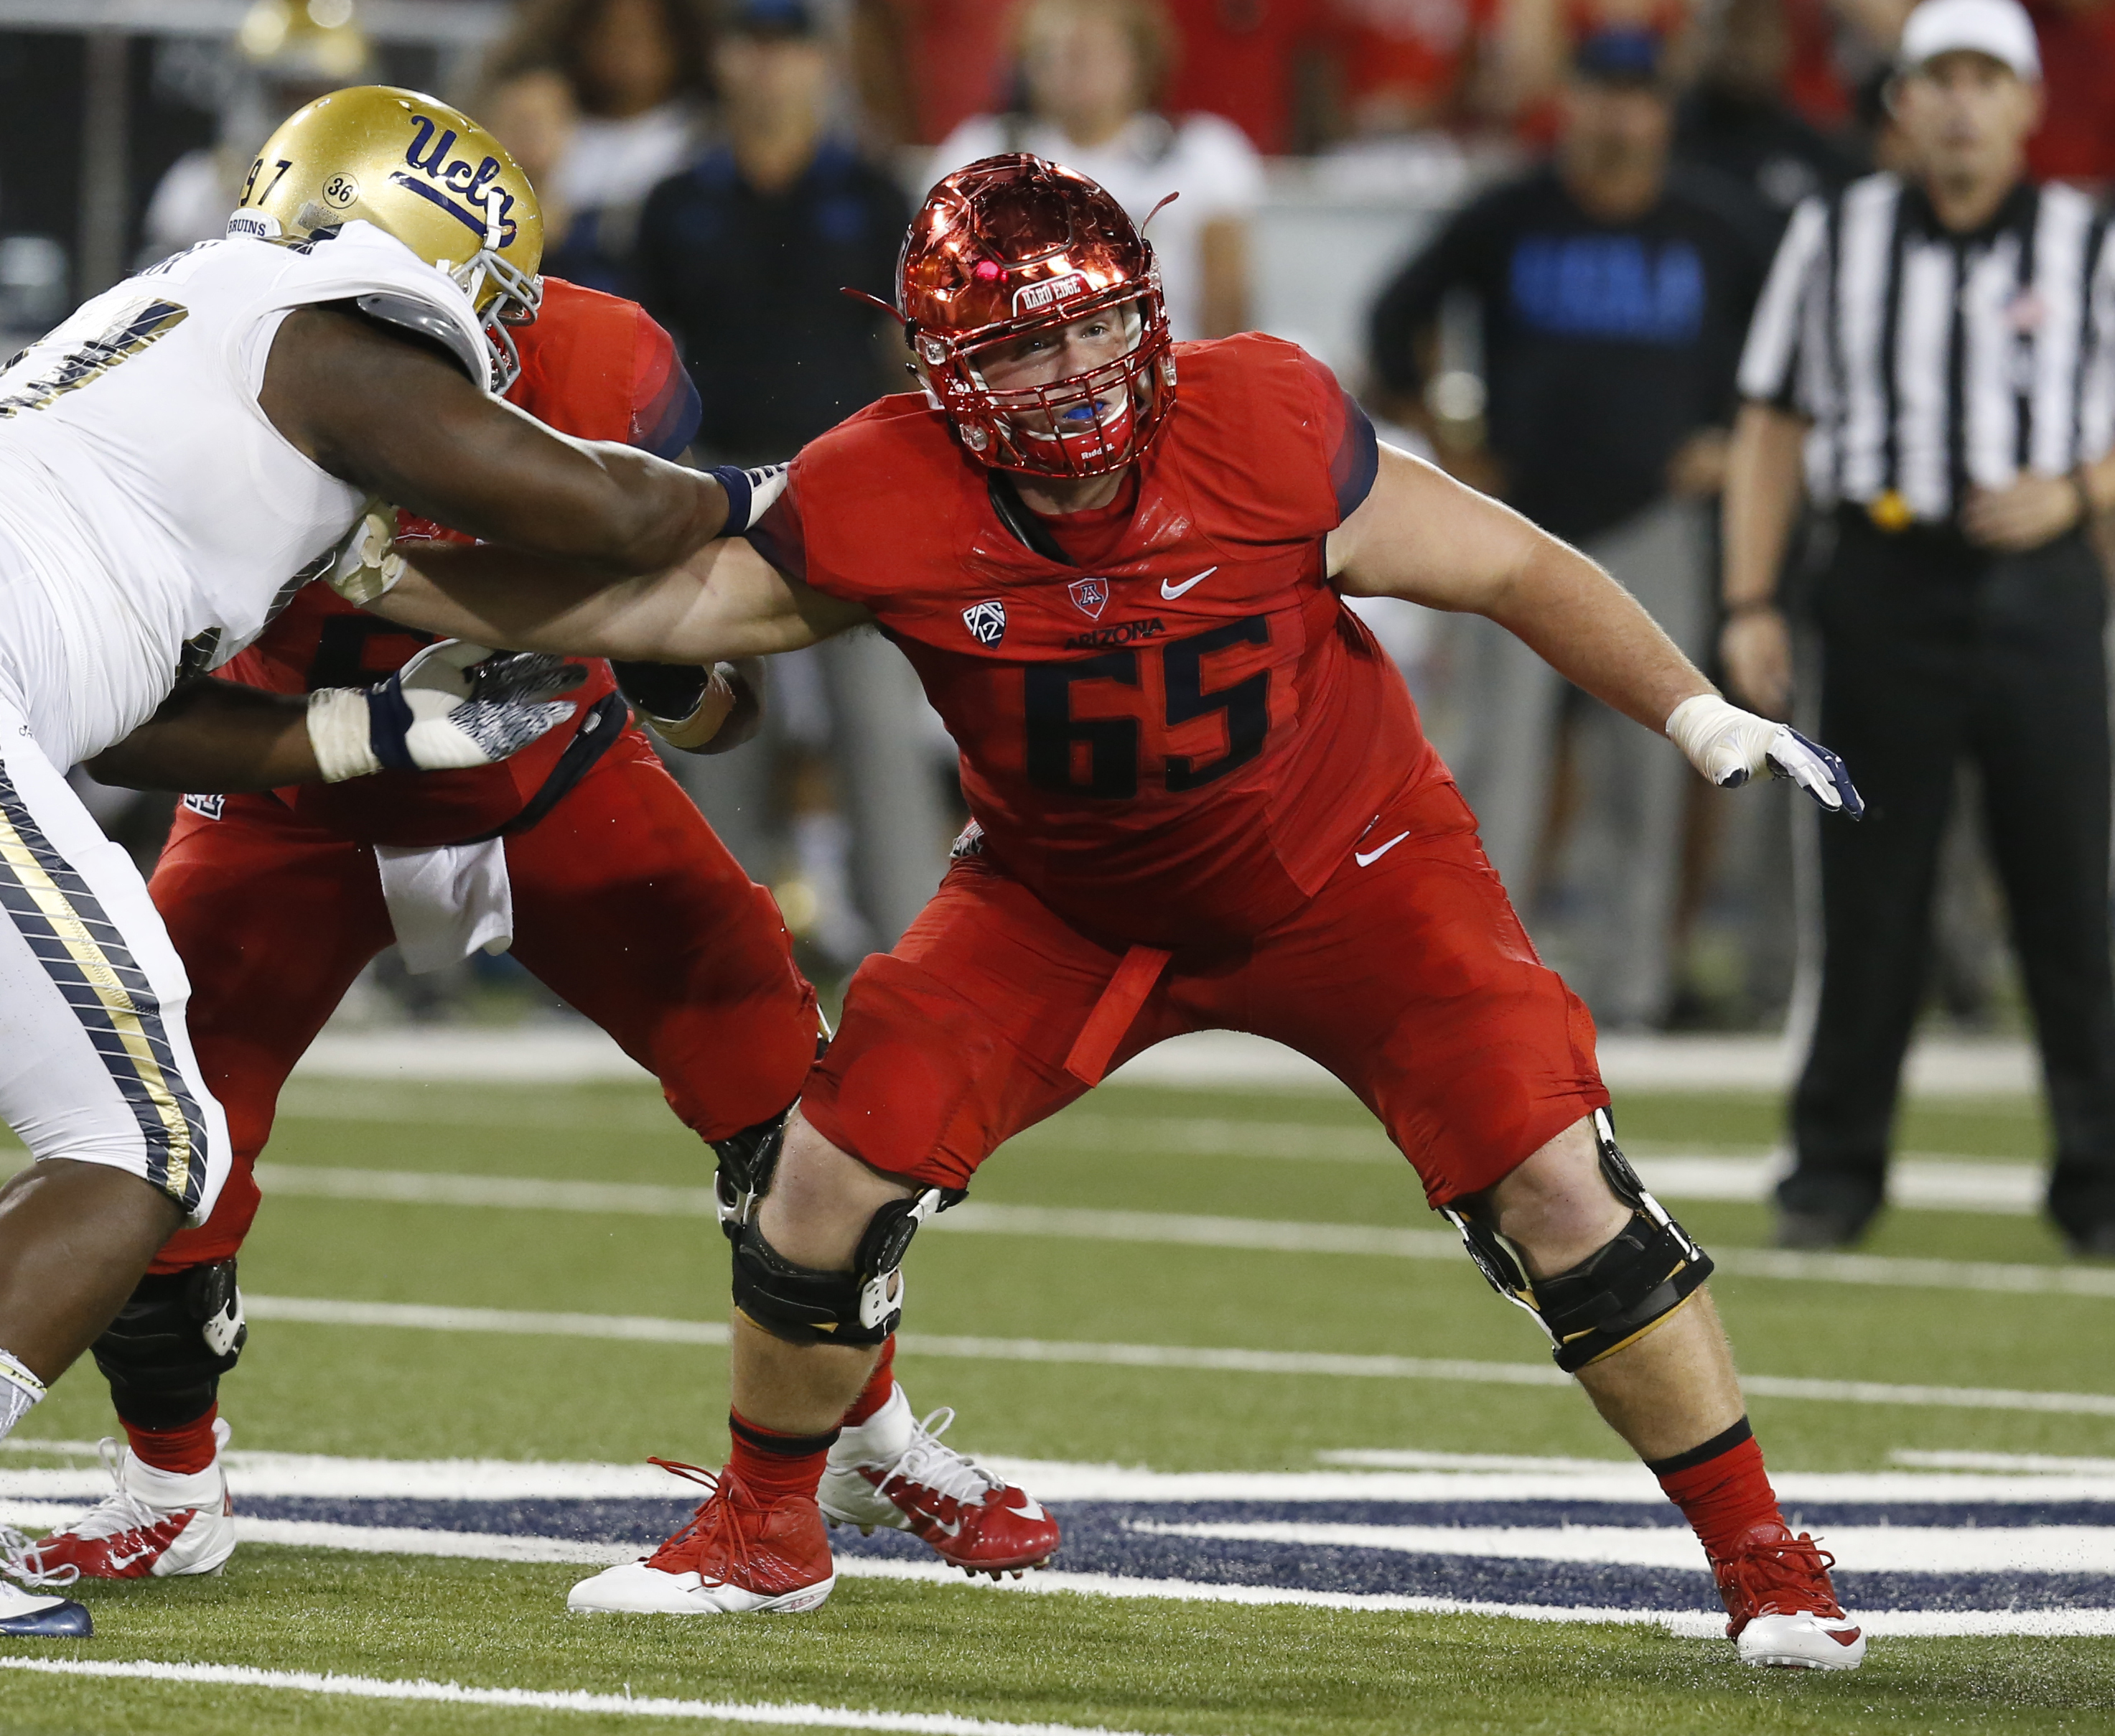 FILE - In this Sept. 26, 2015, file photo, Arizona offensive lineman Zach Hemmila (65) blocks a UCLA player during the first half of an NCAA college football game in Tucson, Ariz. Arizona had to endure one of the most difficult fall camps anywhere, trying